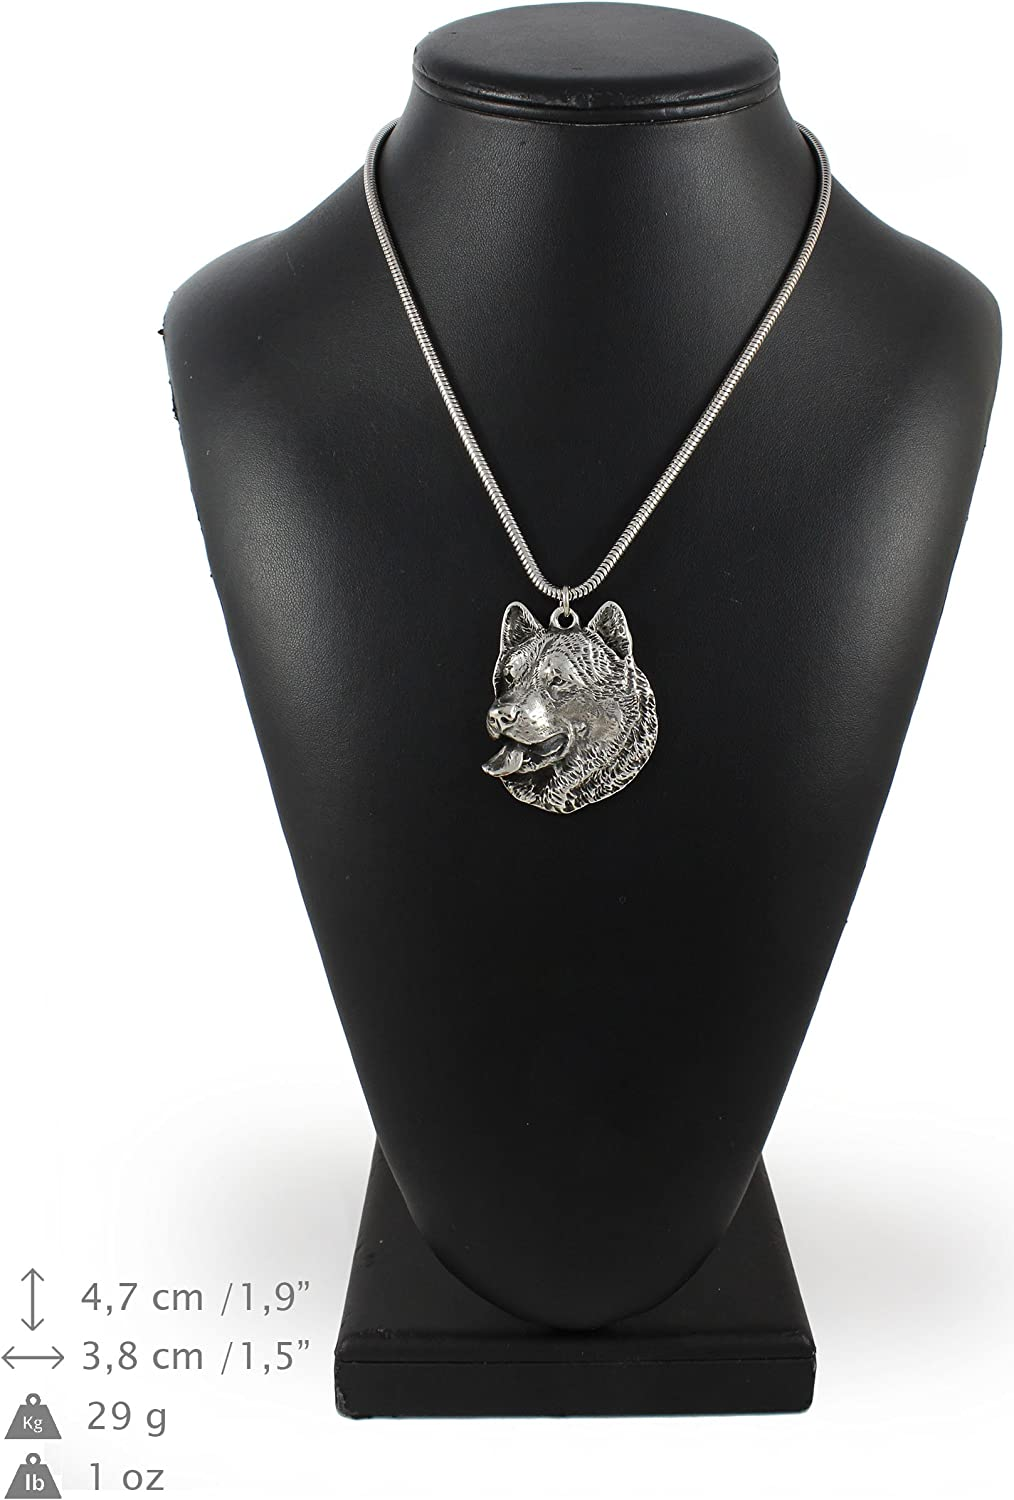 Alaskan Malamute ArtDog Necklace Silver Plated Dog Pendant on a Silver Chain